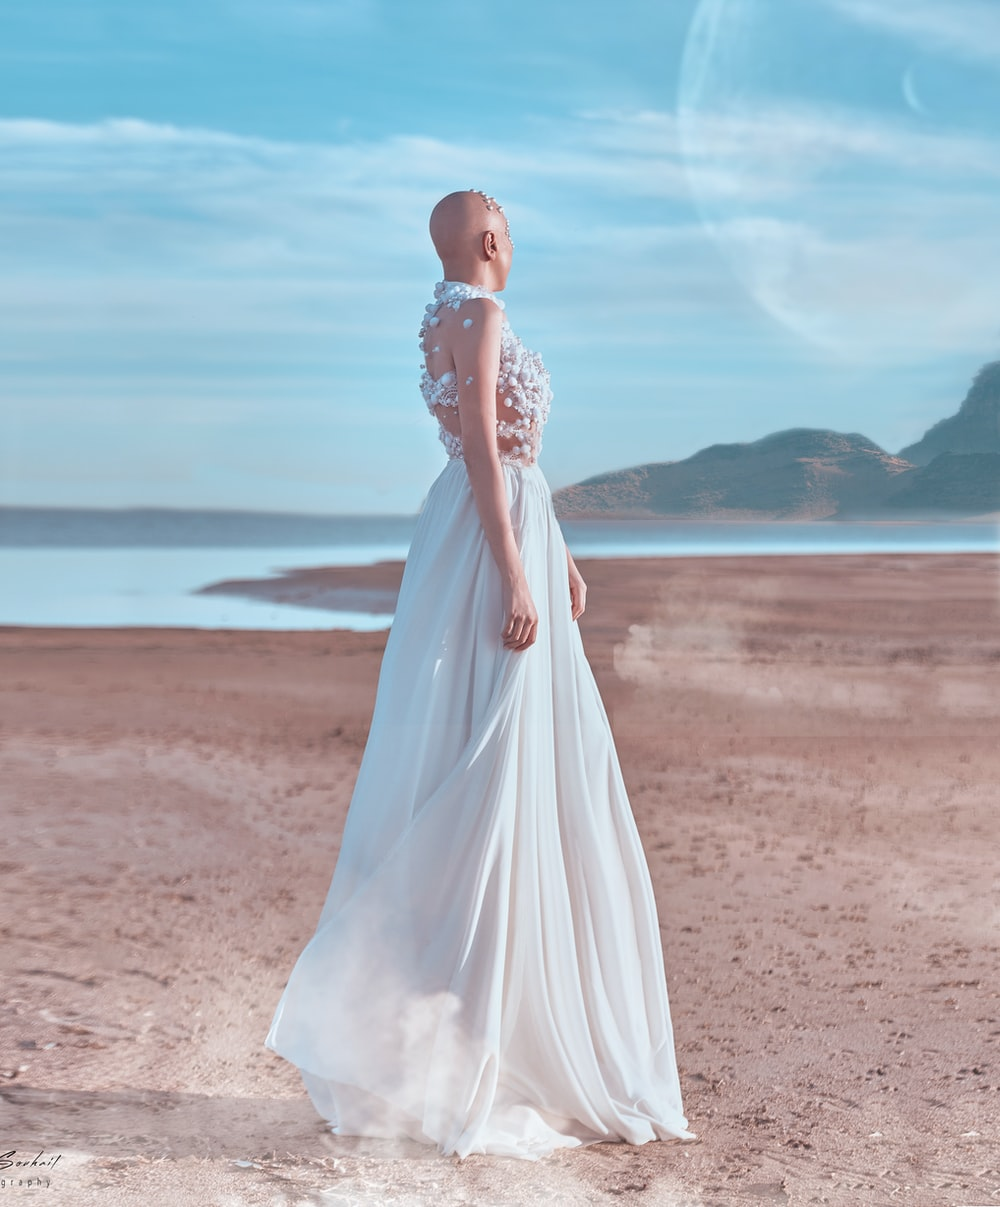 woman in white wedding dress standing on brown sand during daytime